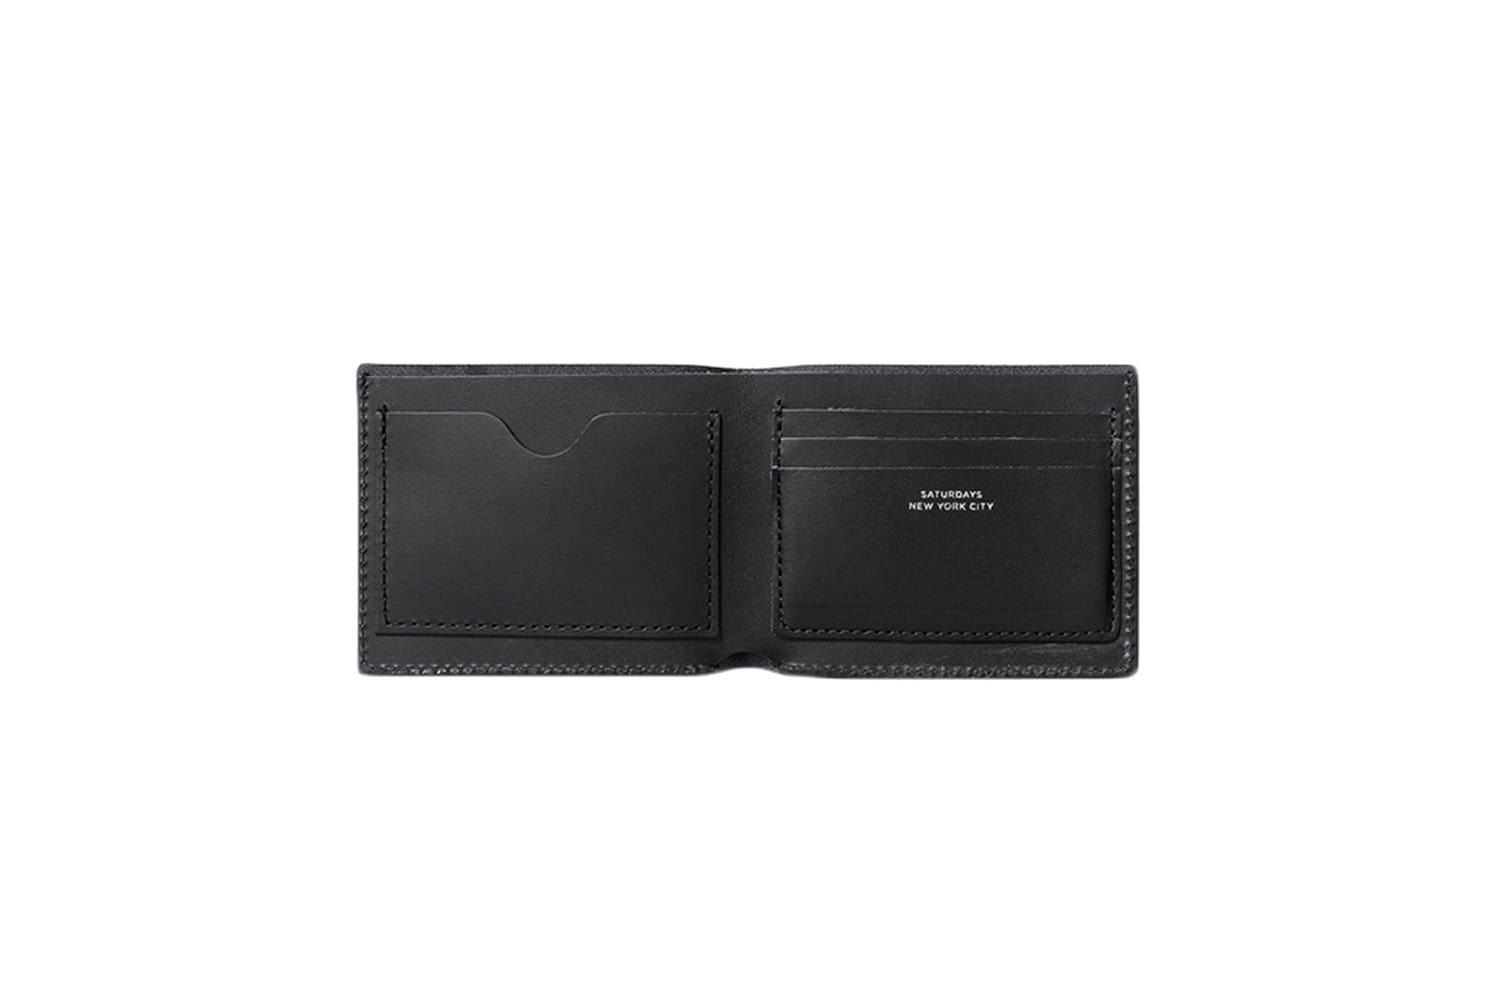 BI-FOLD WALLET ACCESSORIES SATURDAYS NYC